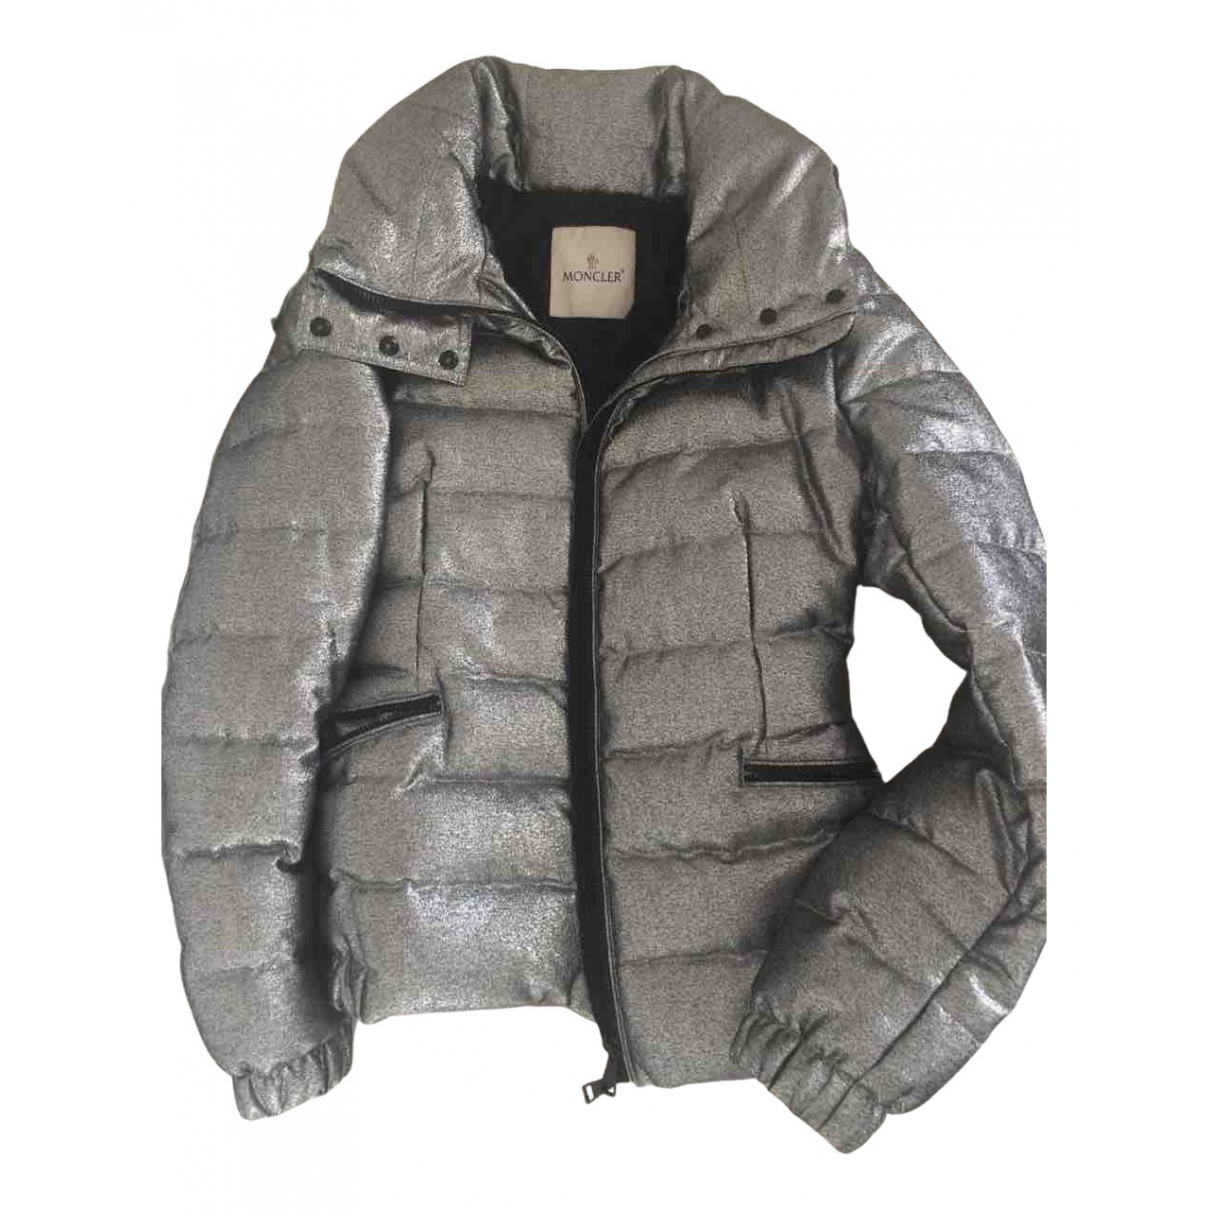 Moncler N Silver Cotton coat for Women M International